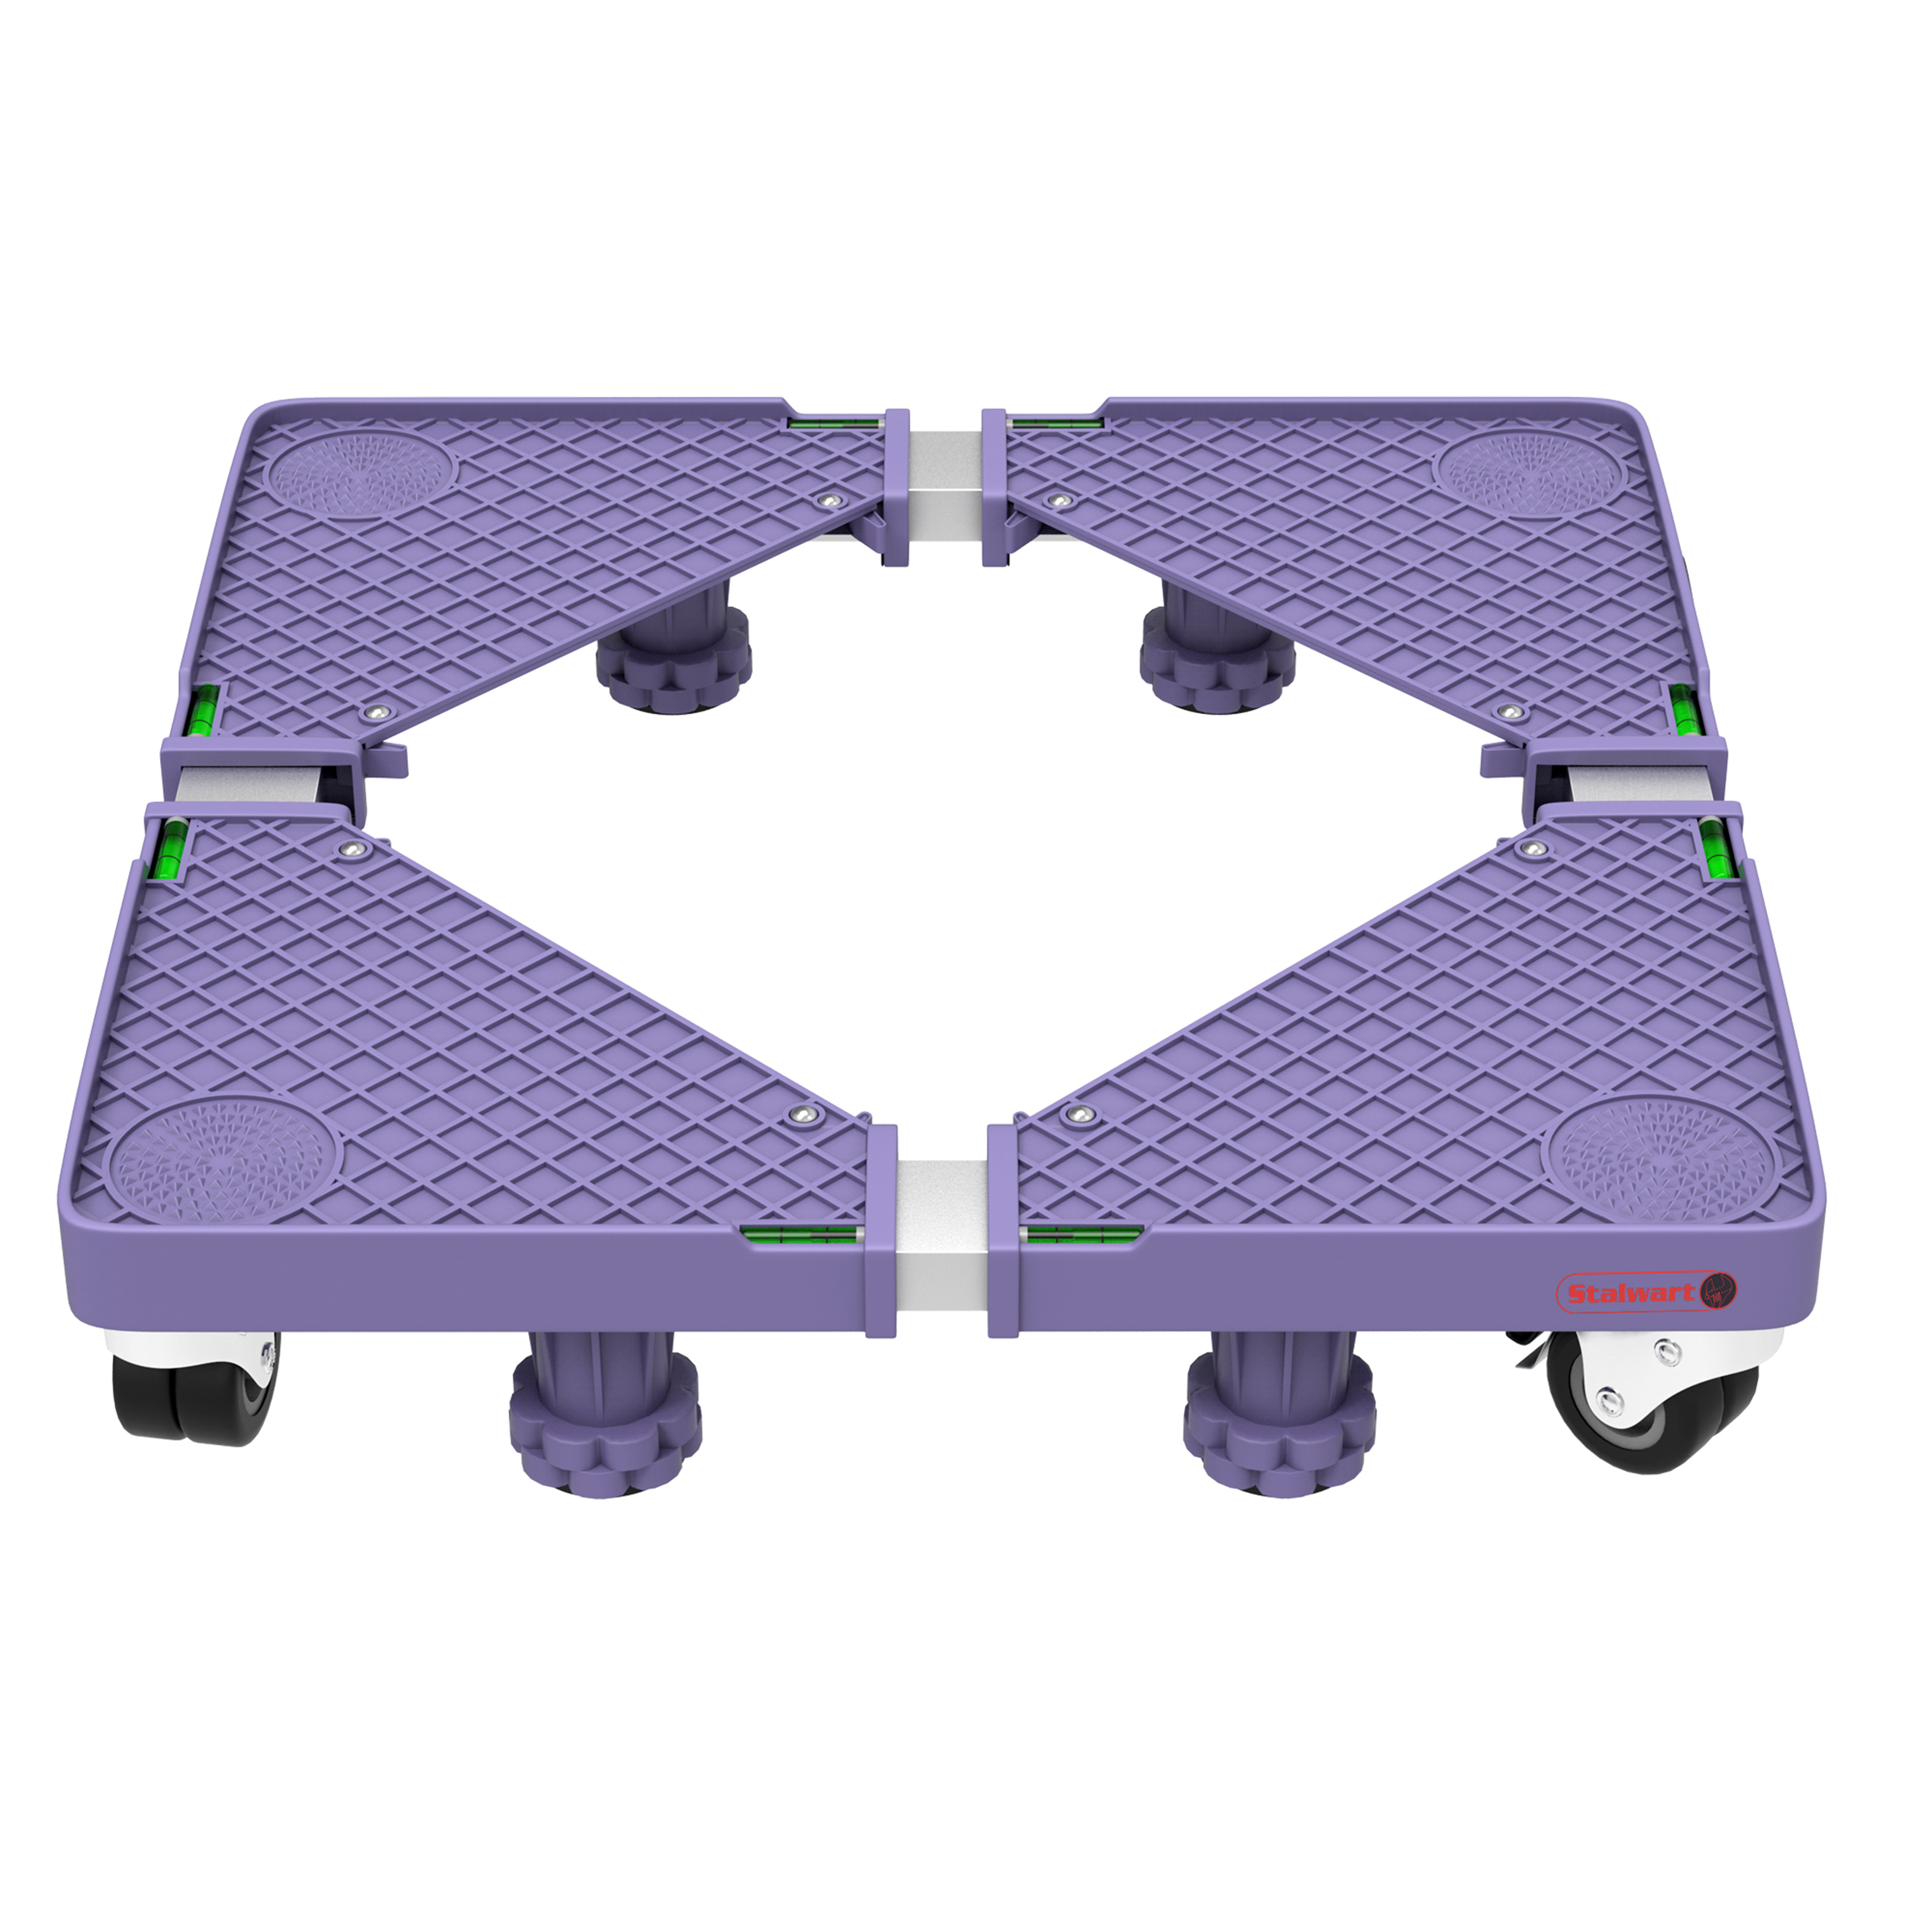 Wrap /& Move MOVING DOLLY 590x490mm 360-Deg Swivel Castors With Brakes,300Kg Load